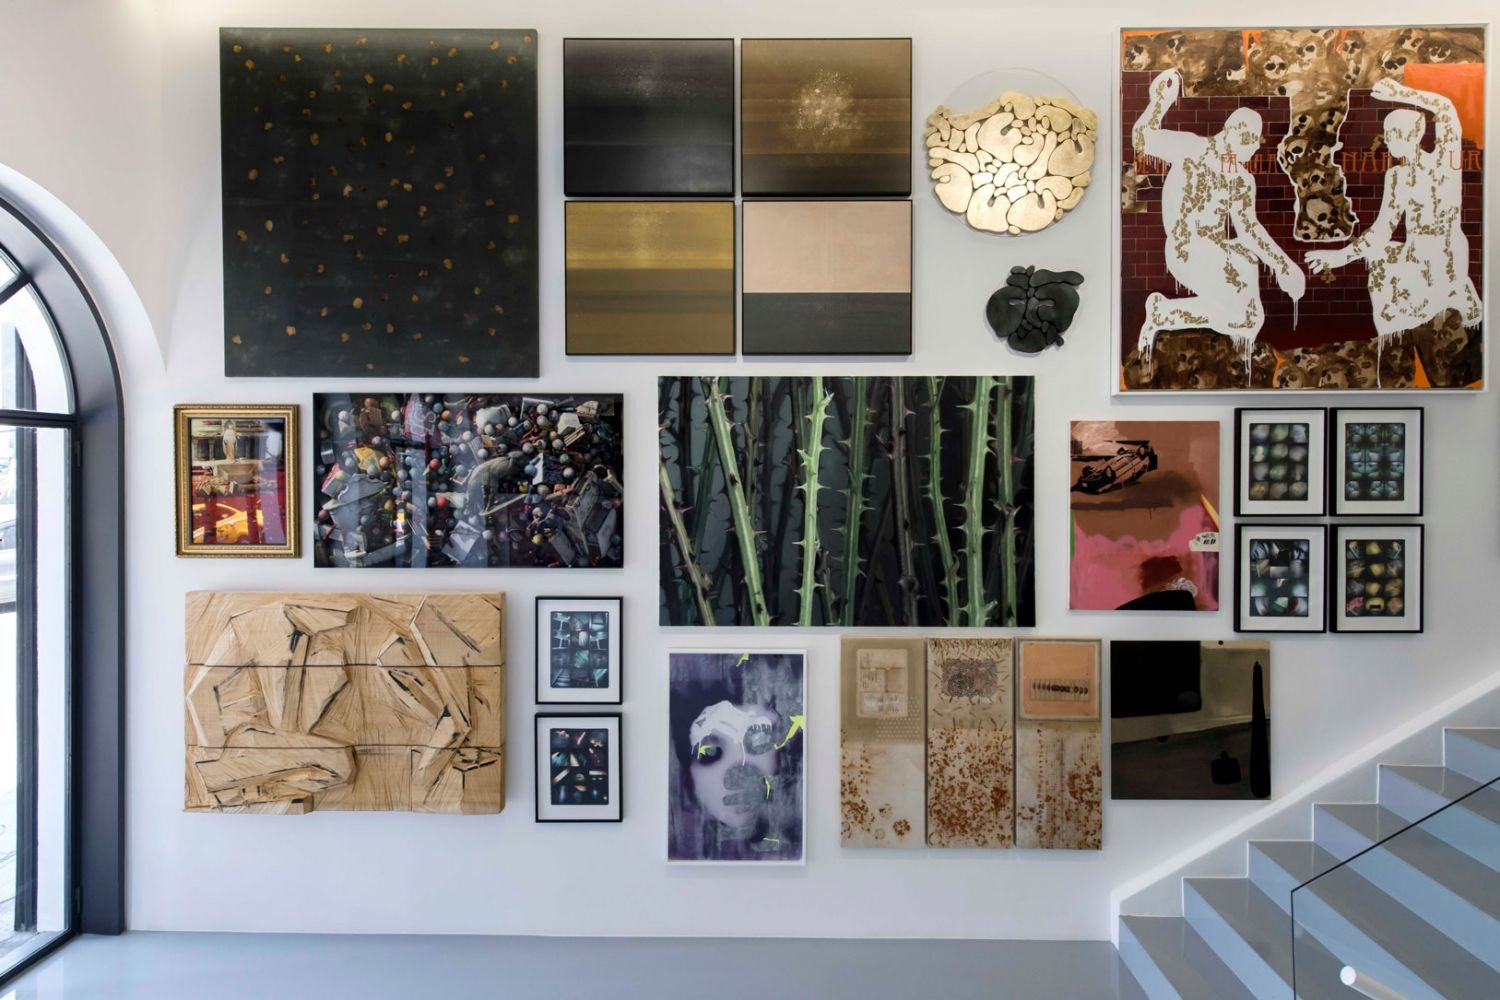 'Eternal Summer' group show reveals multiple vision possibilities with the works by 24 artists at ArtOn in Istanbul.